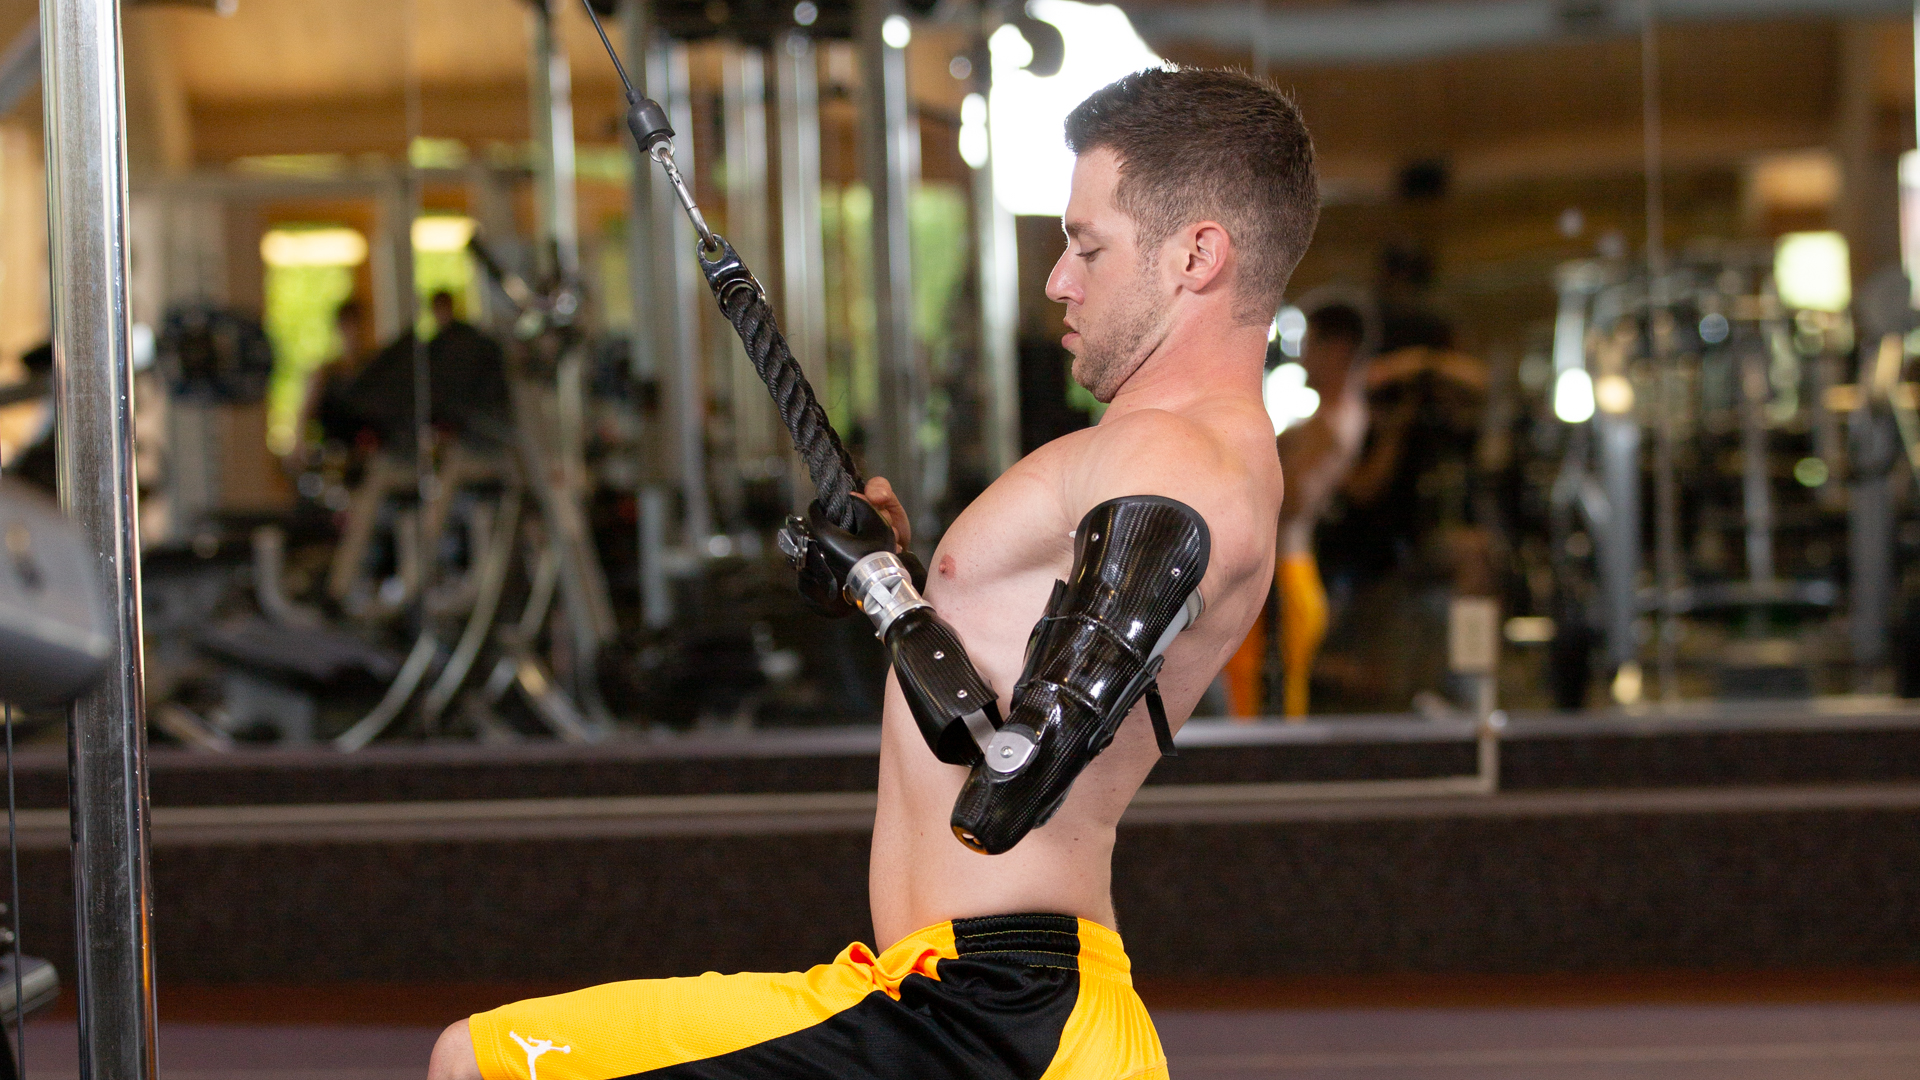 Max Okun works out with custom designed workout prosthesis